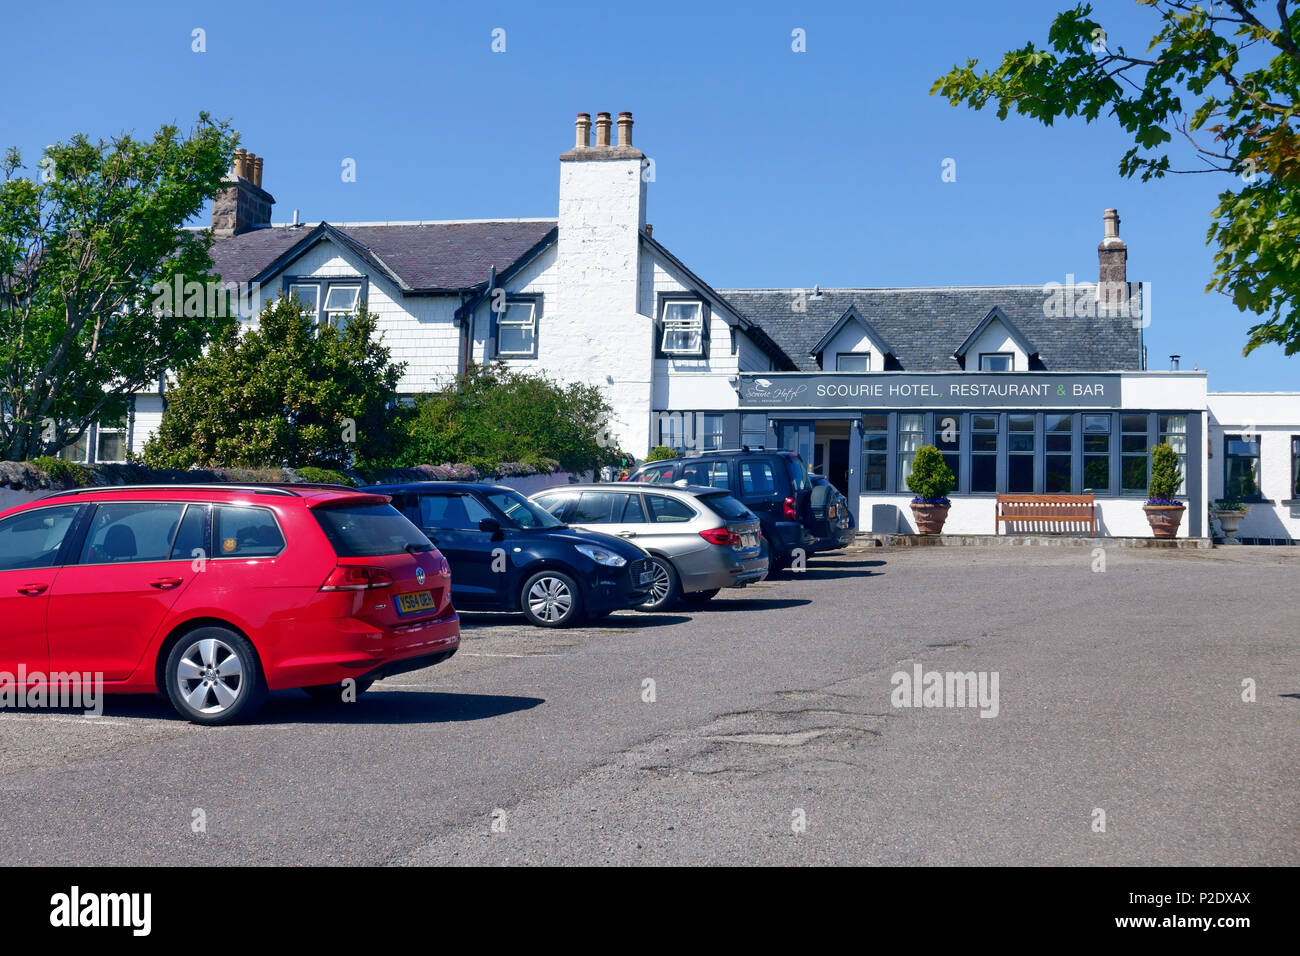 Scourie hotel, restaurant & bar just off the North coast 500 route in Sutherland, Highlands, Scotland - Stock Image